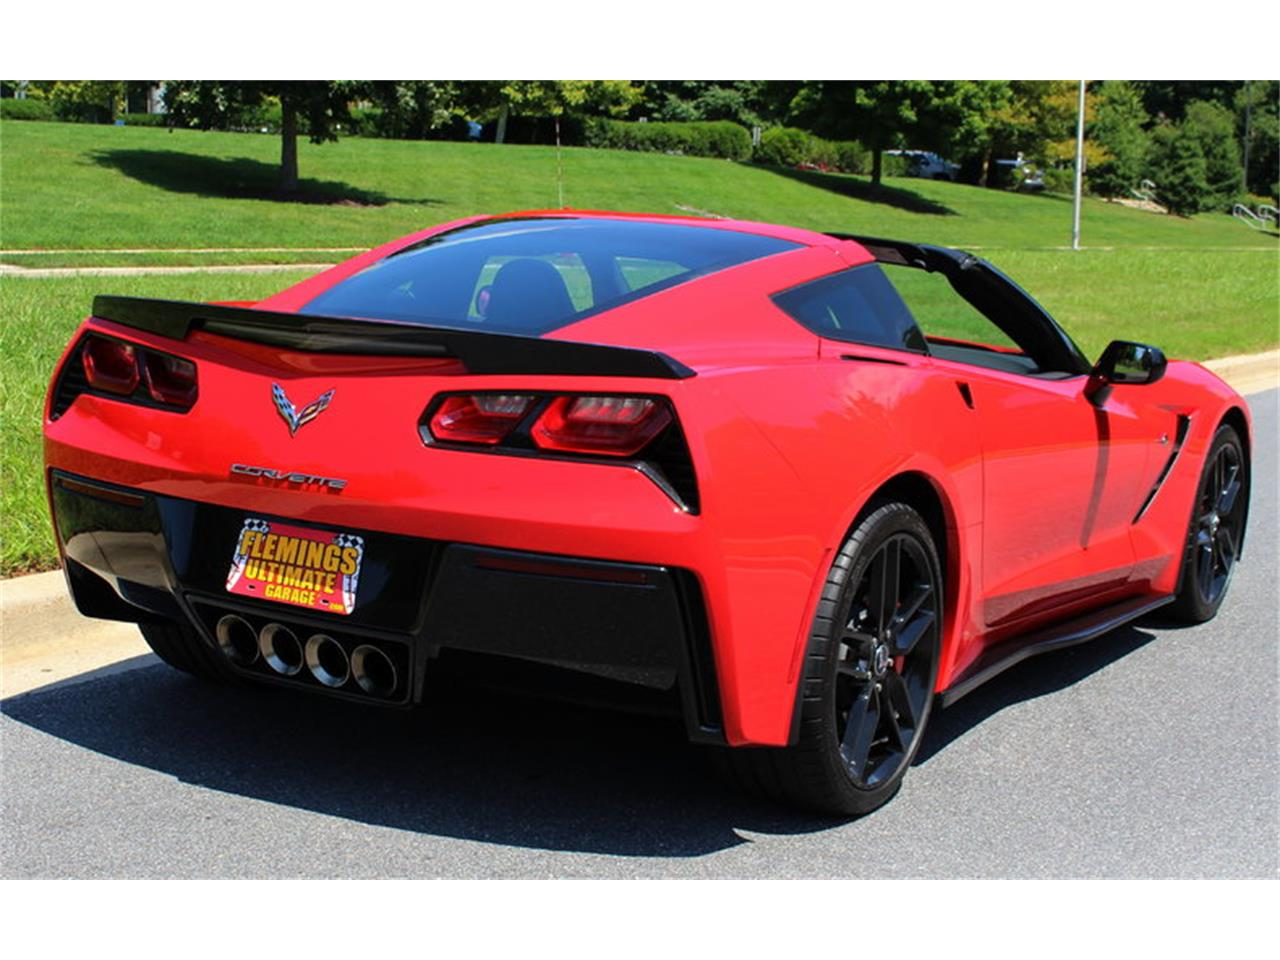 Large Picture of '14 Chevrolet Corvette - $49,990.00 - MGRV